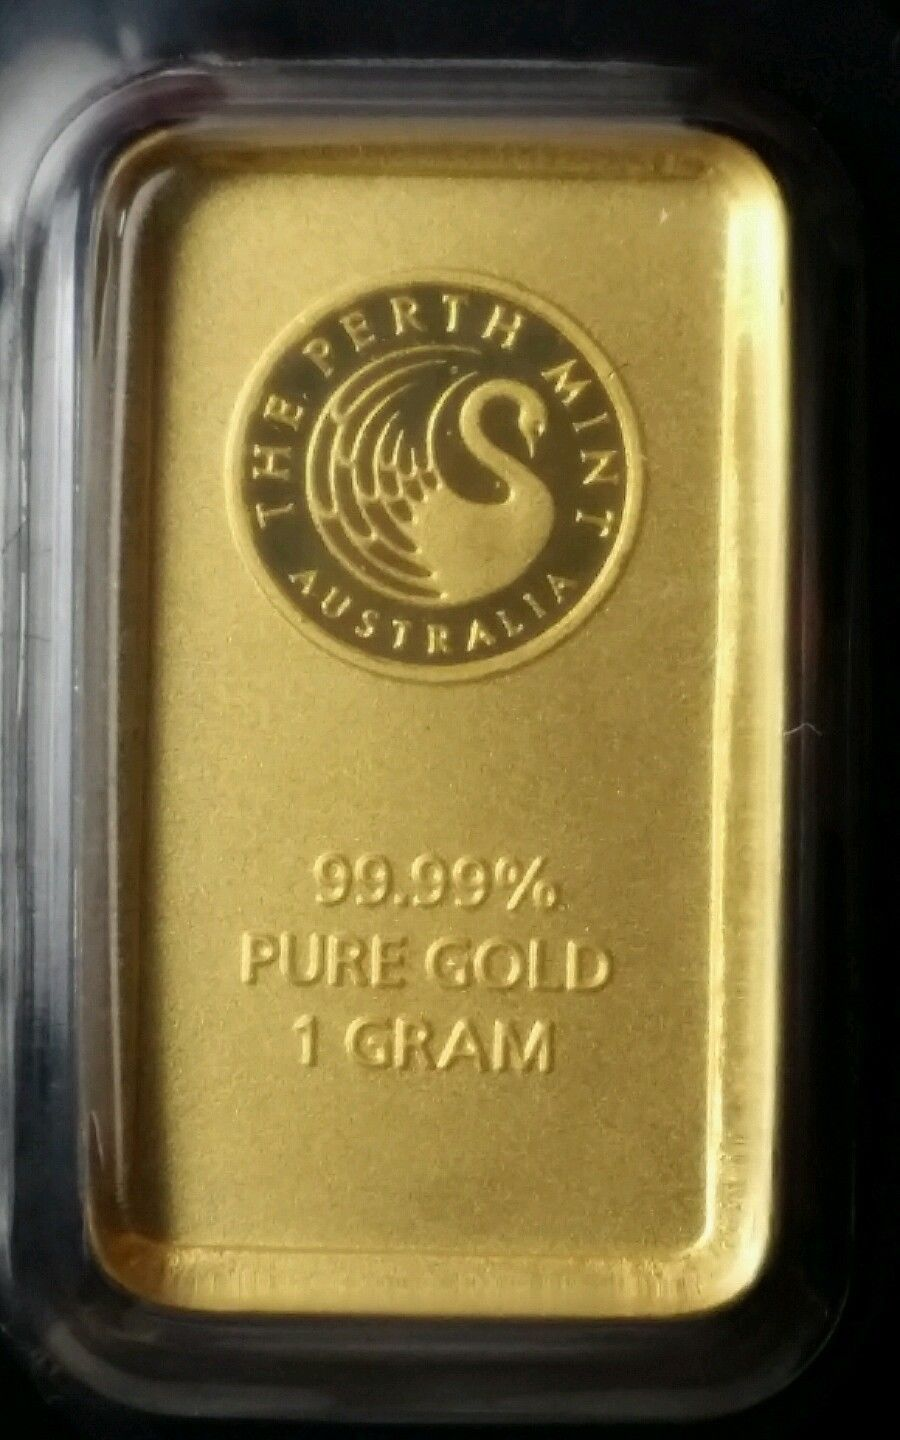 Perth Mint 1 Gram Gold Bar In Assay Card Gold Bar Mint Bar Mint